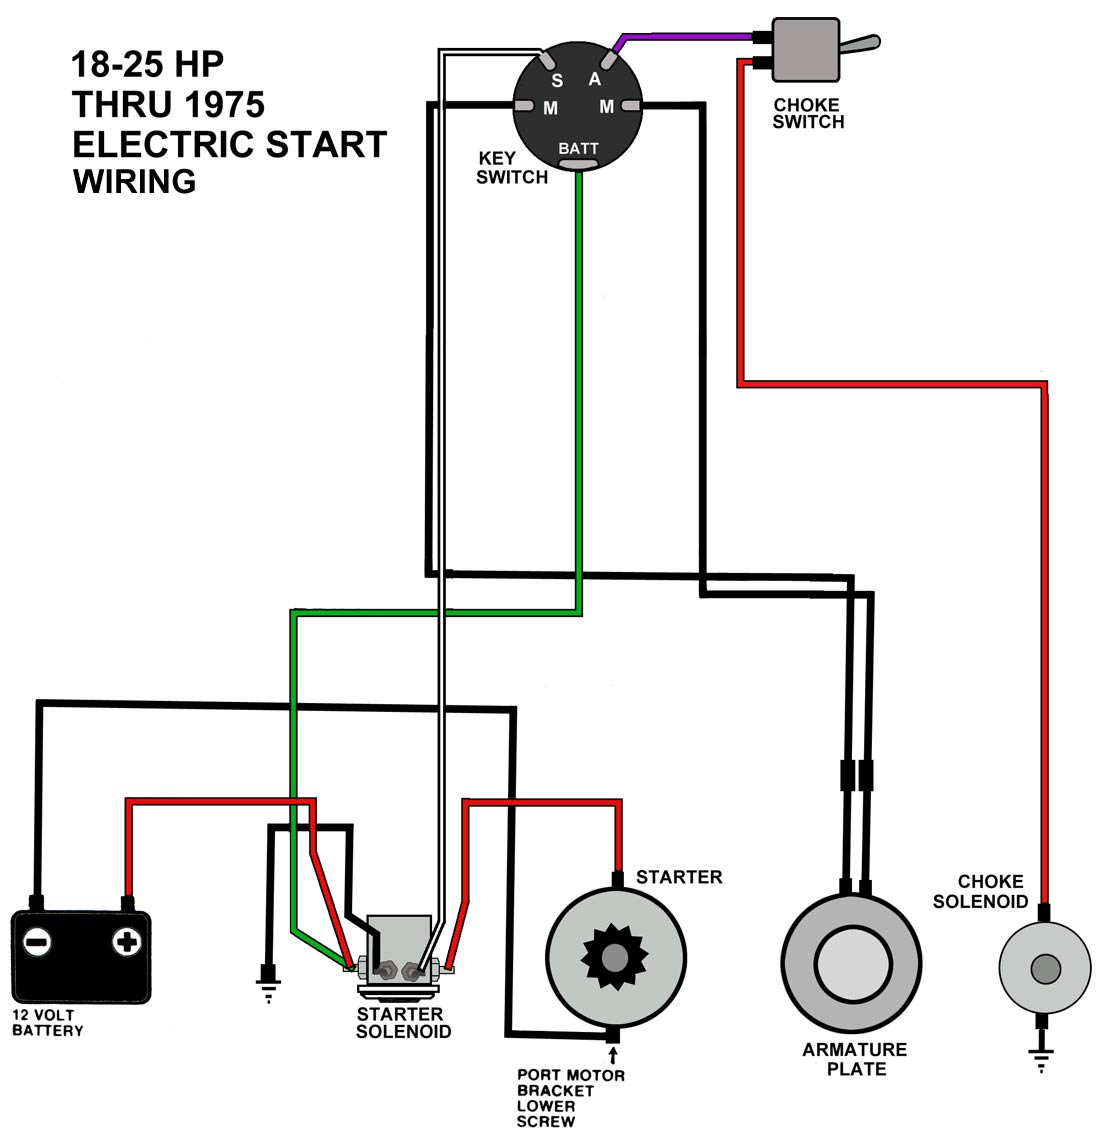 manual motor starter switch wiring diagram detailed schematics diagram rh antonartgallery com Marine Starter Solenoid Wiring Diagram Chevy Starter Wiring Diagram